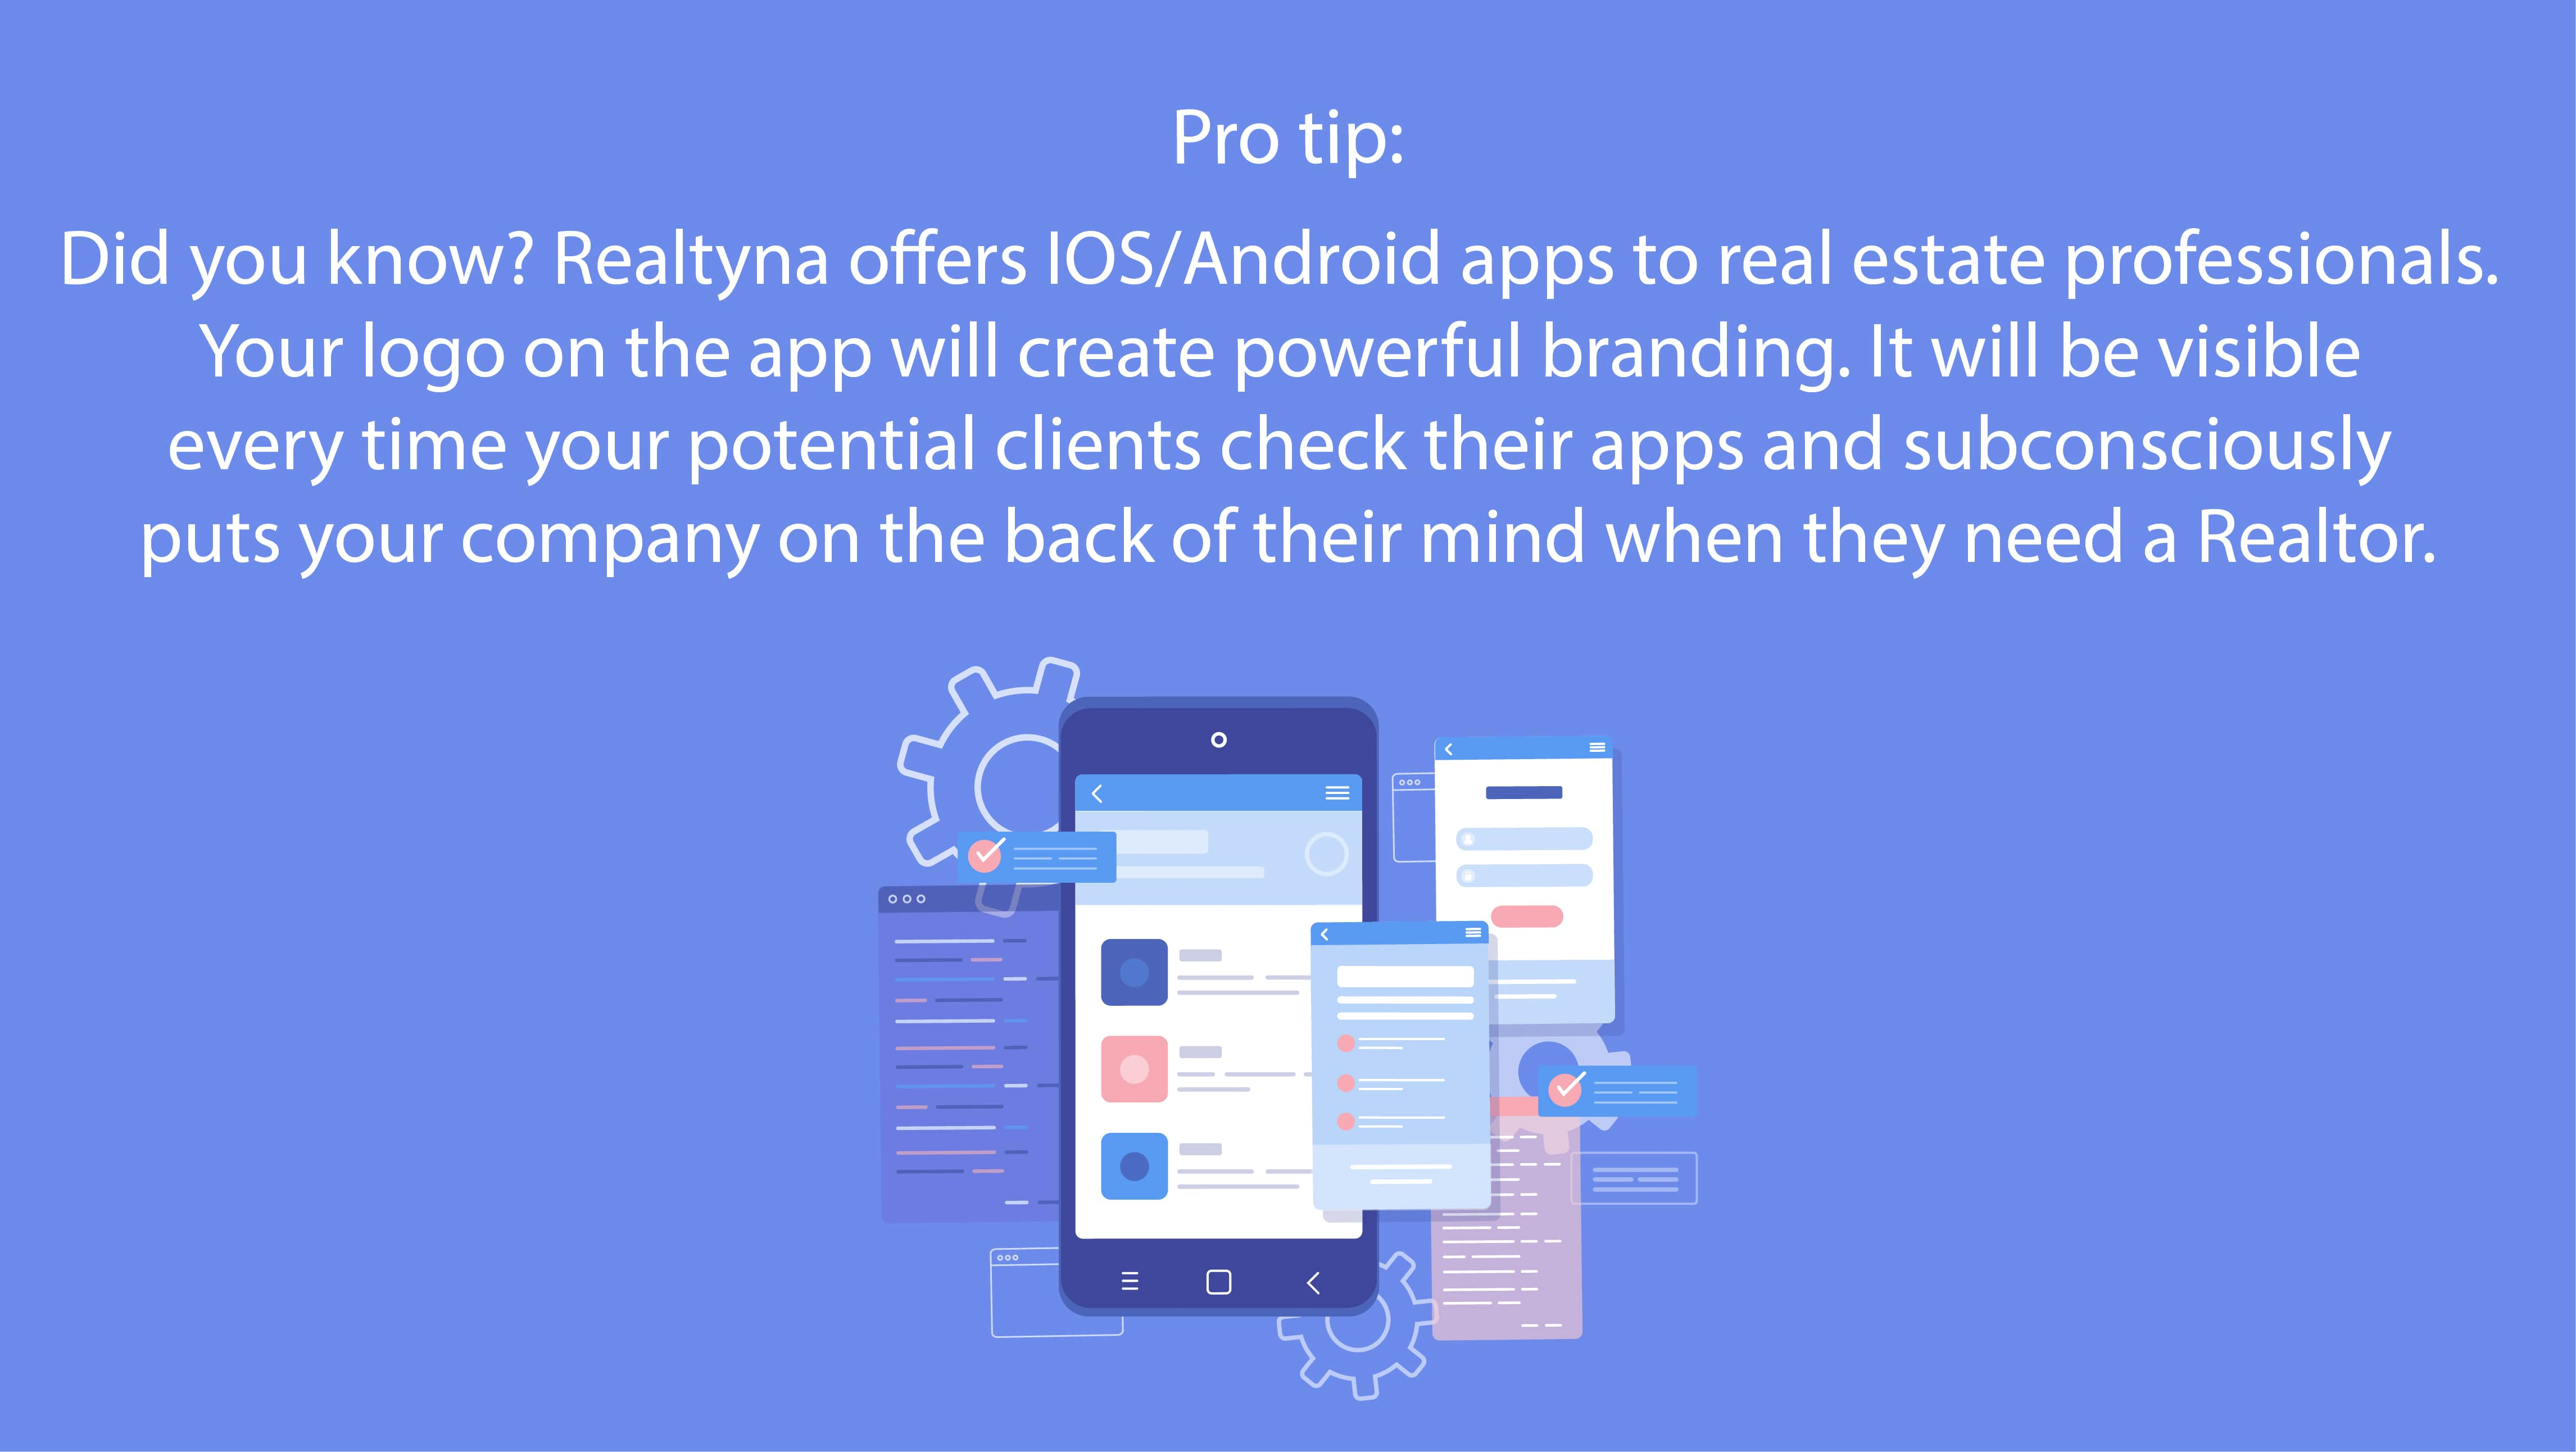 Realtyna's IOS/Android Apps